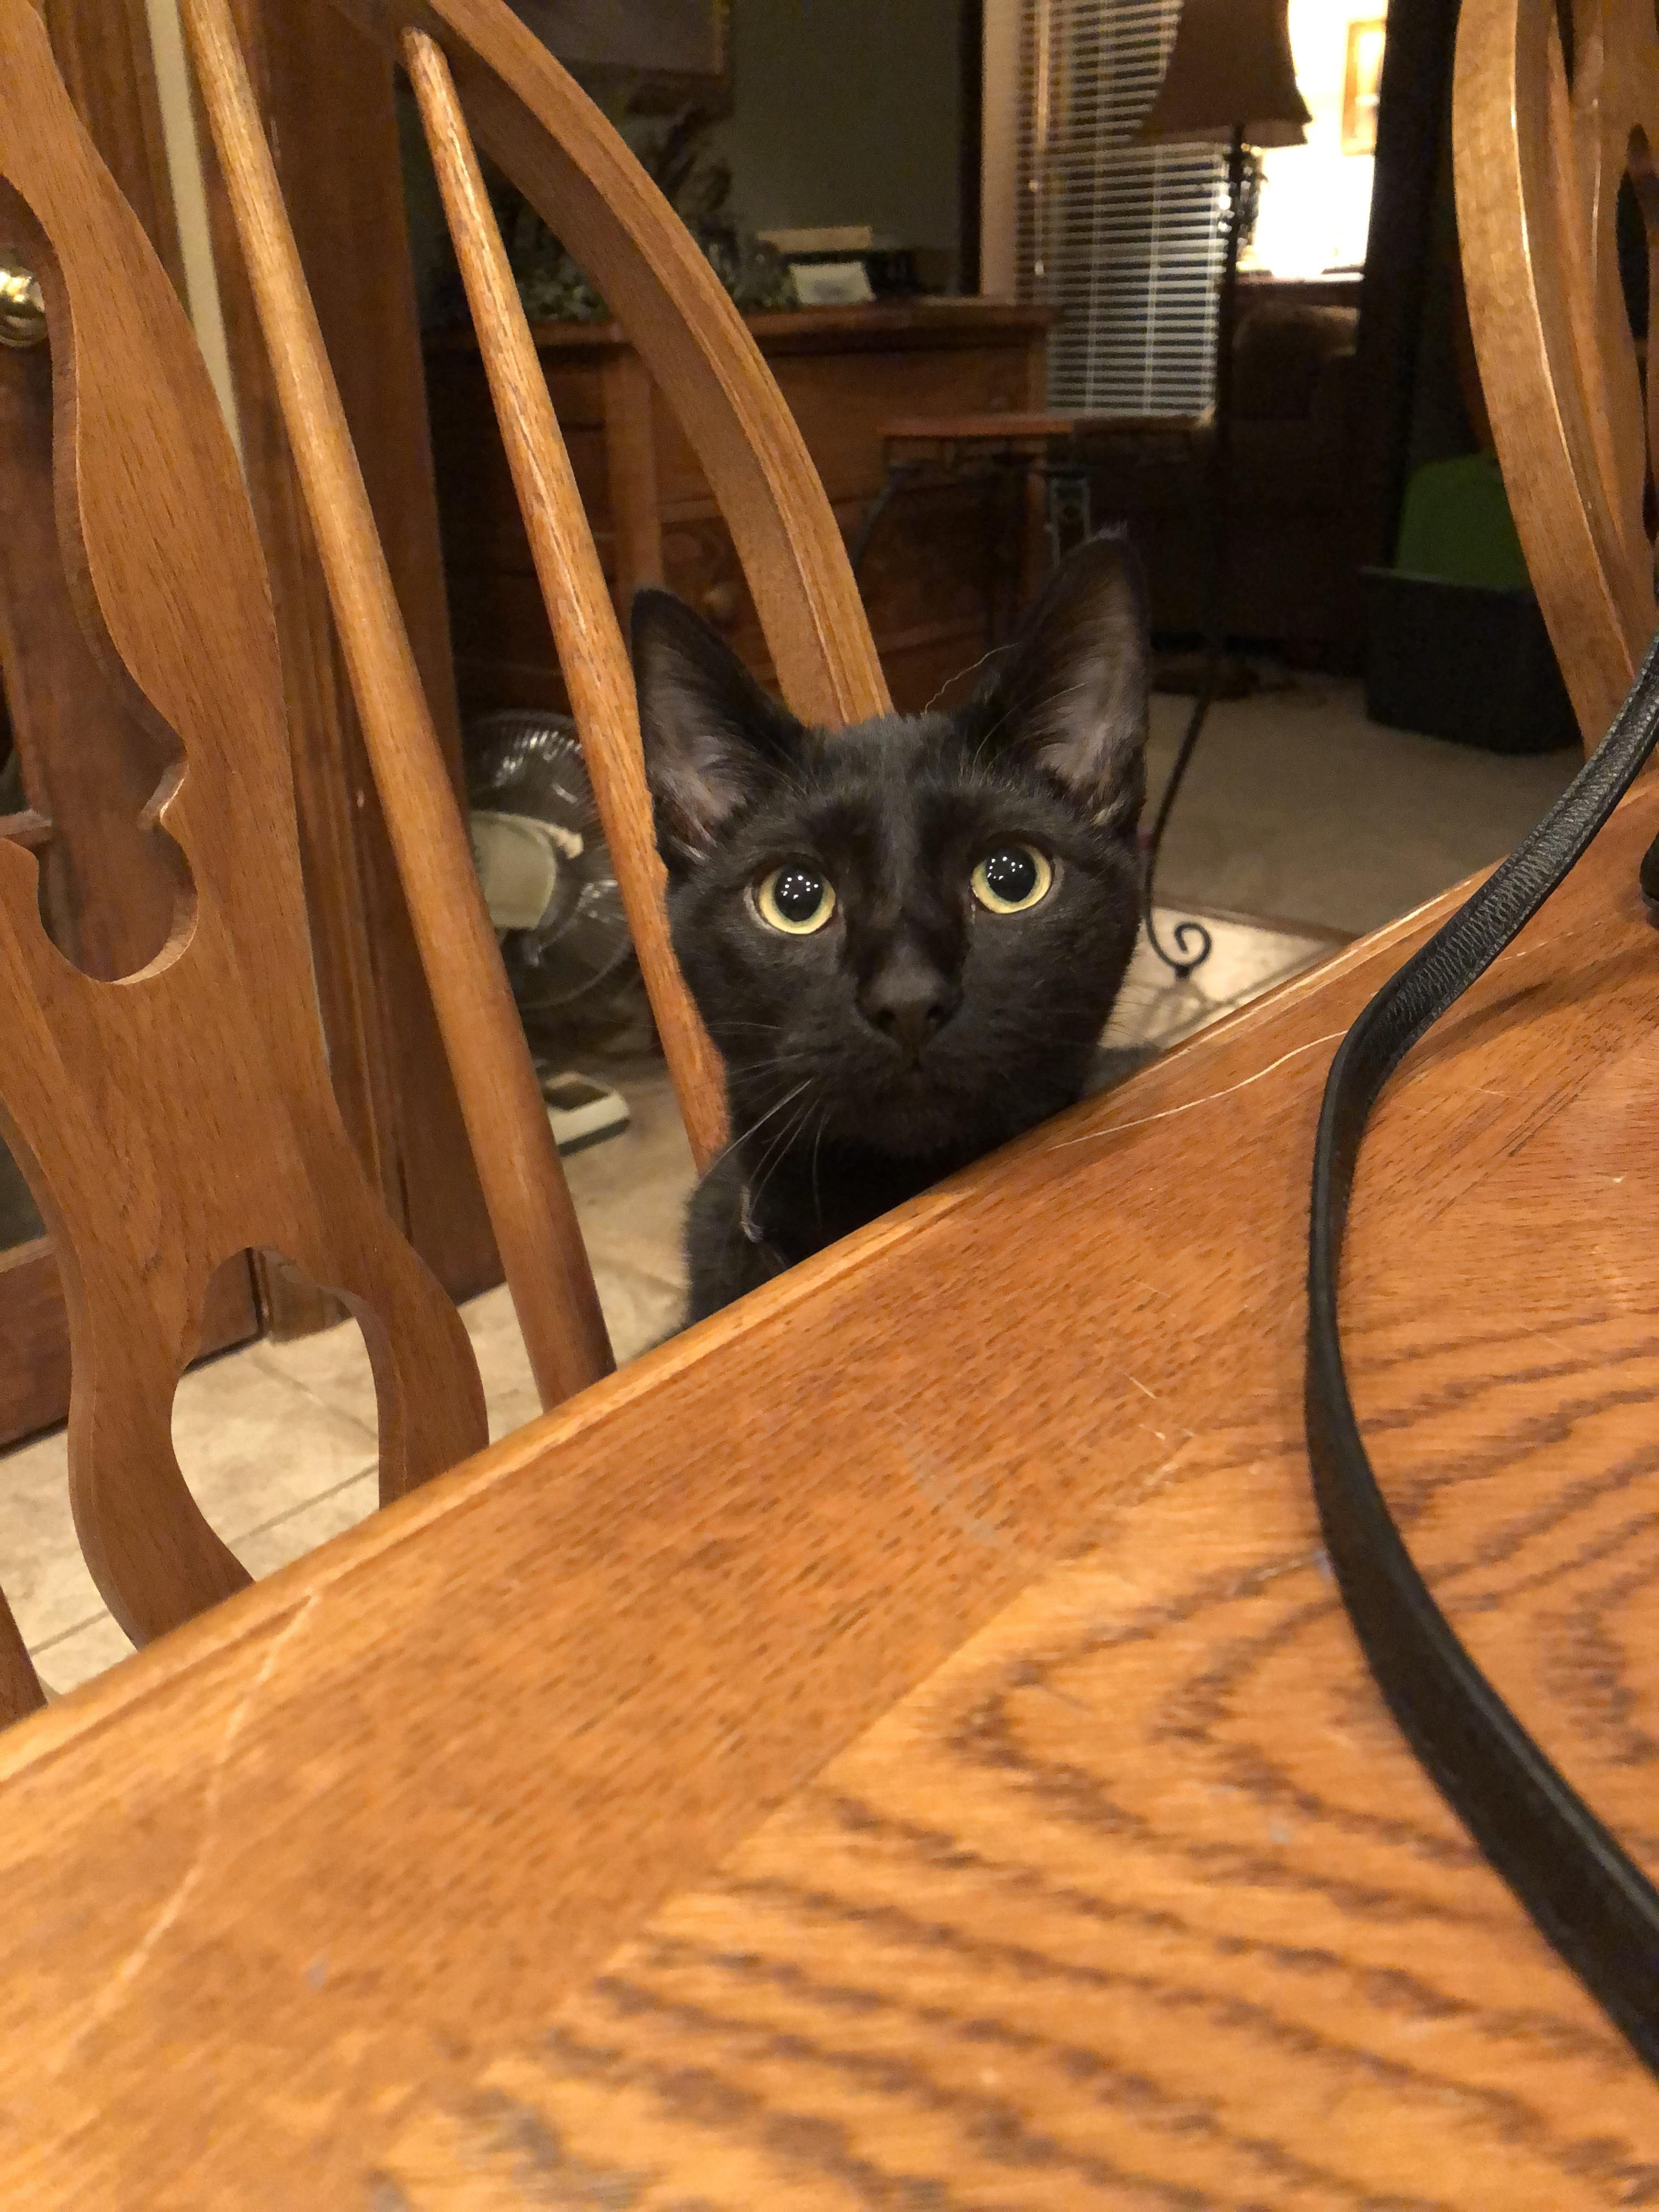 Lil Man Sits At The Table To Watch Me Eat Dinner Hello There Bright People Are You Catlover Or Have You Any Pretty Cats Beautiful Kittens Black Cat Cats